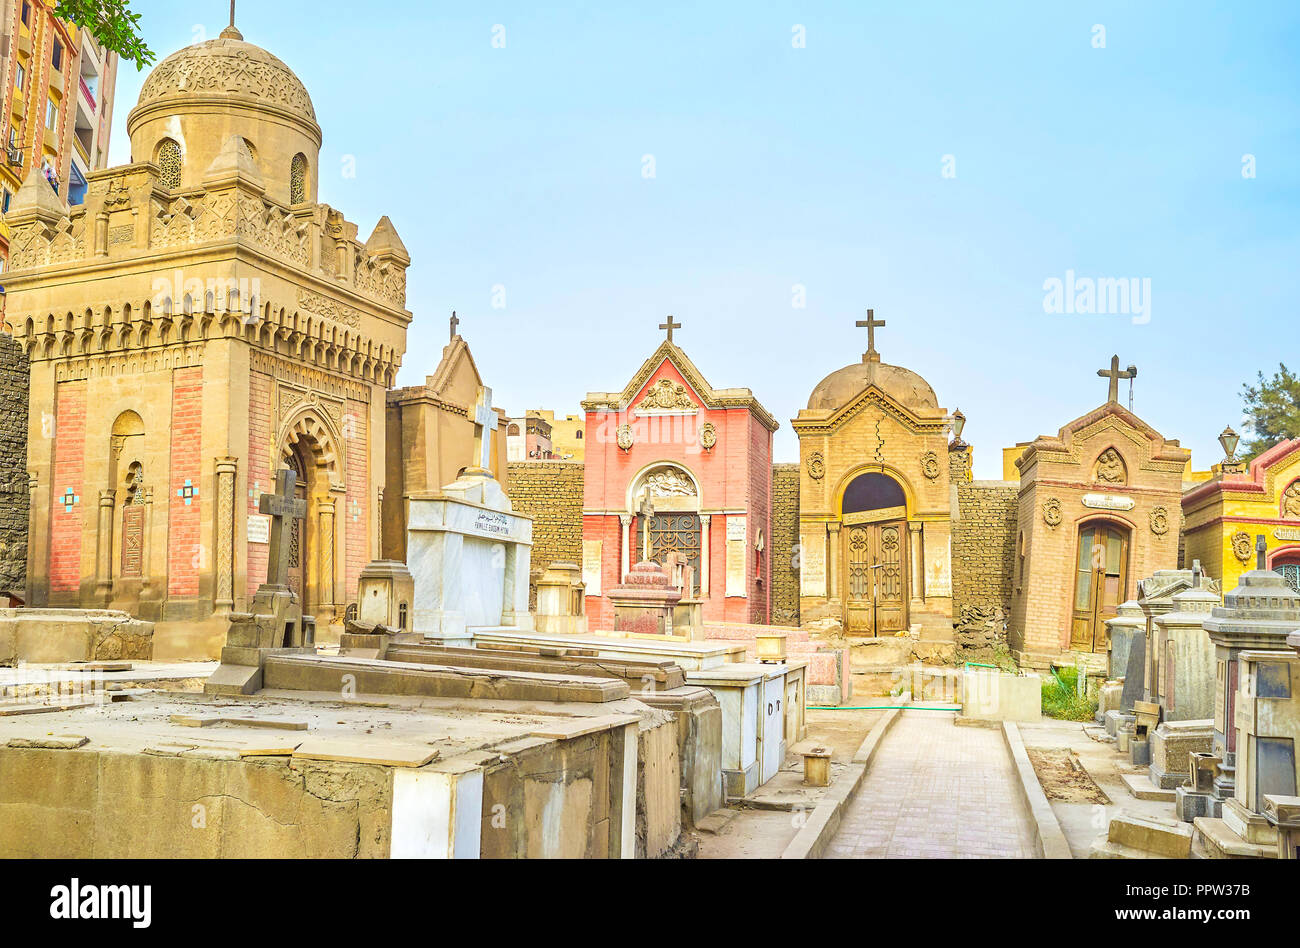 CAIRO, EGYPT - DECEMBER 23, 2017: The old decrepit crypts and tombs in medieval  cemetery in Coptic district, on December 23 in Cairo - Stock Image